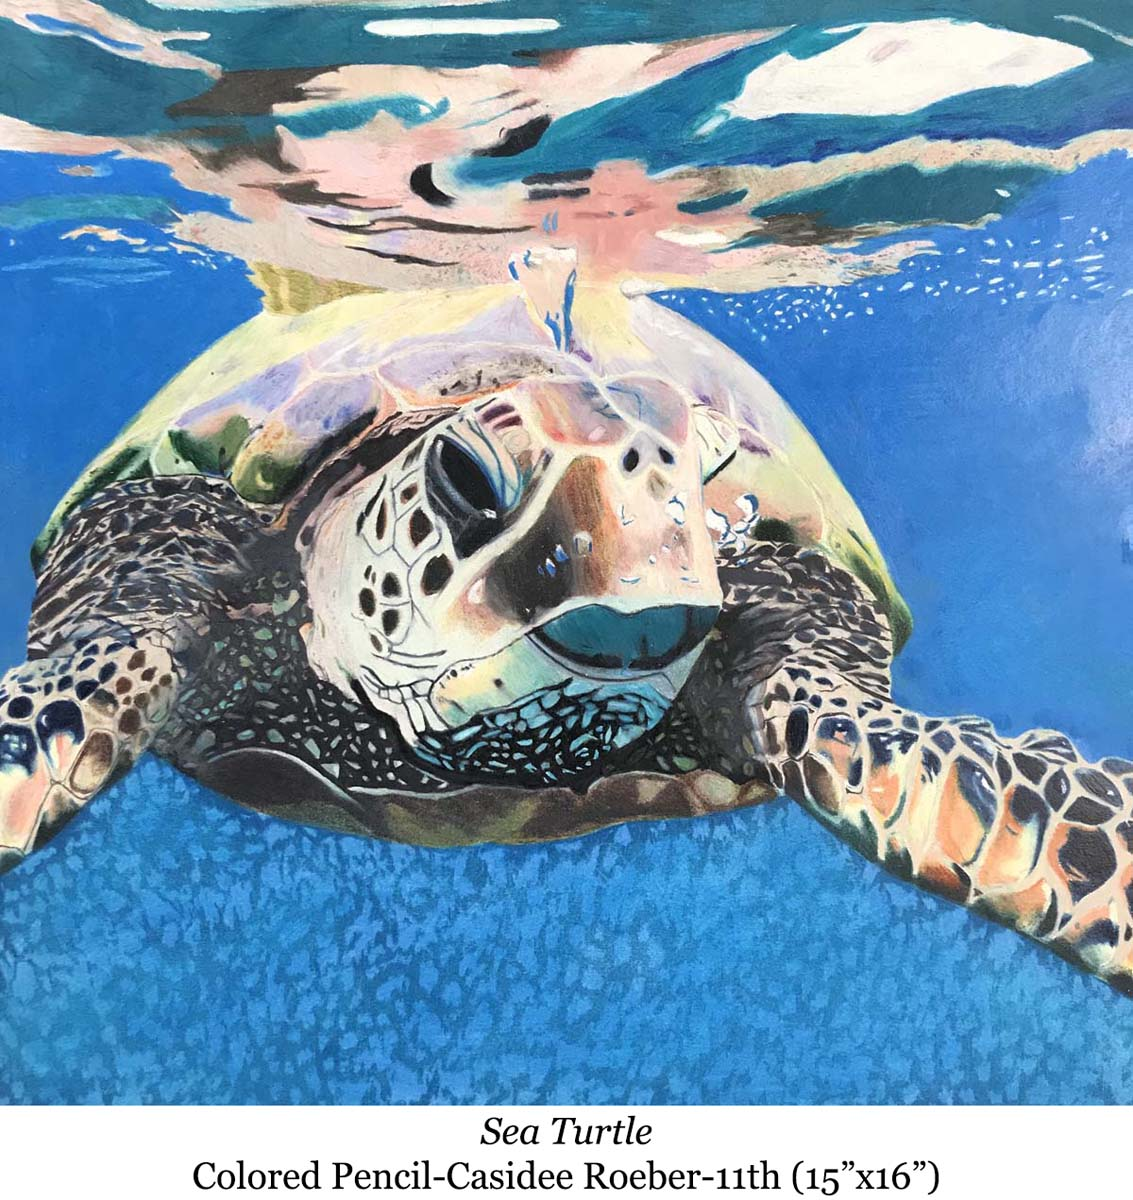 1588002939-sea_turtle-colored_pencil-casidee_roeber-11th__15_x16__